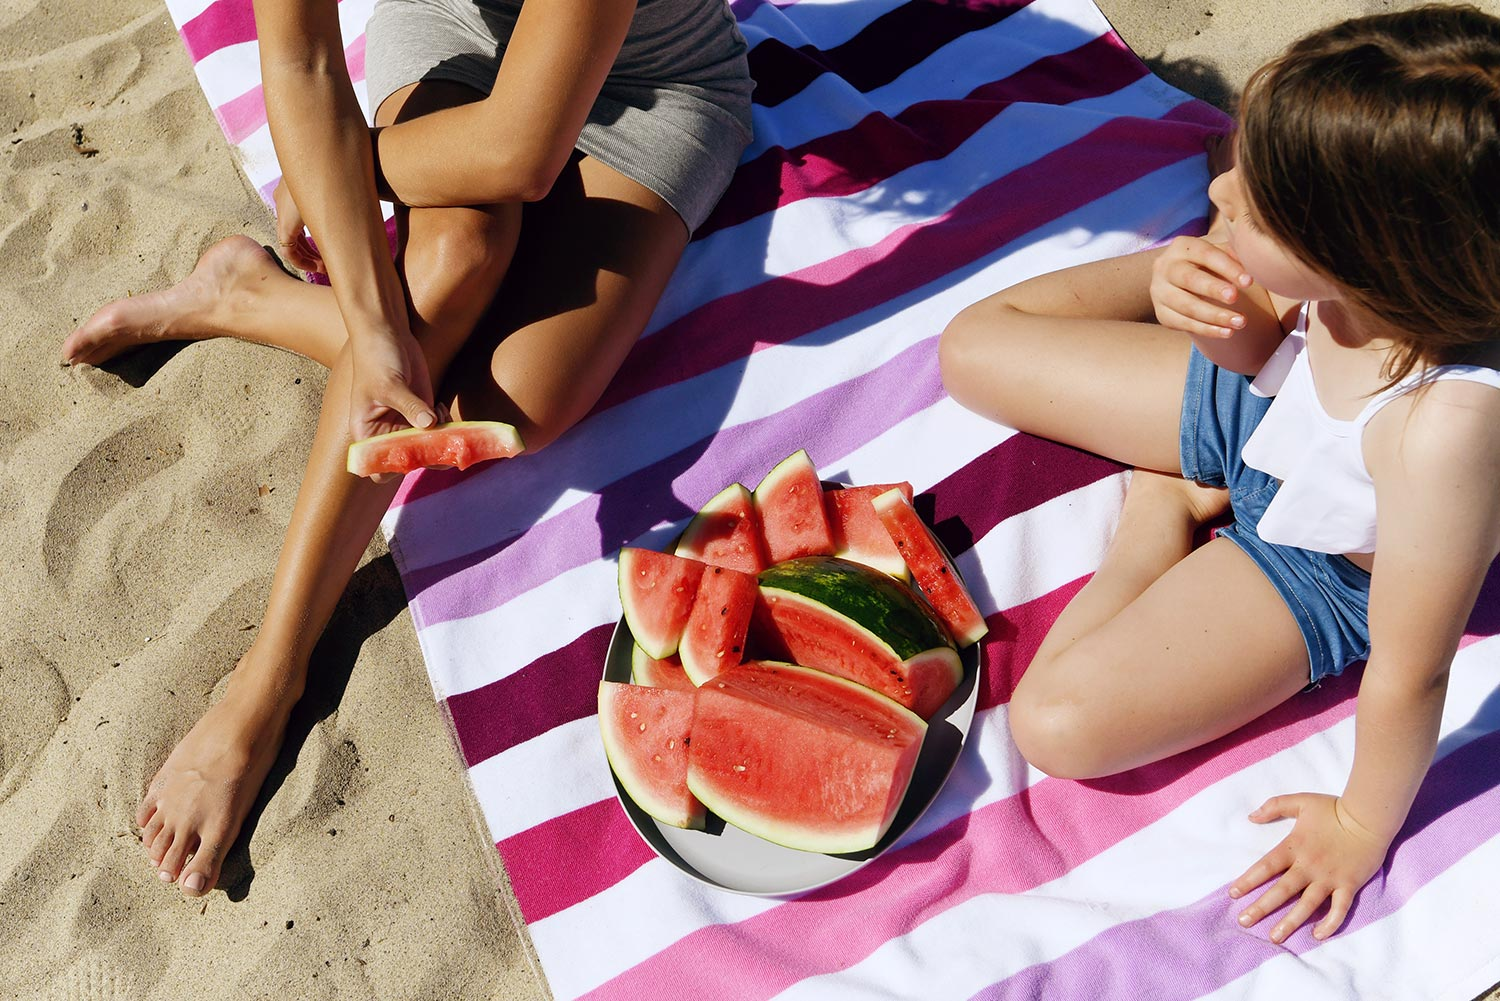 Woman and girl sitting on a pink and purple cabana beach towel eating watermelon on a sandy beach.